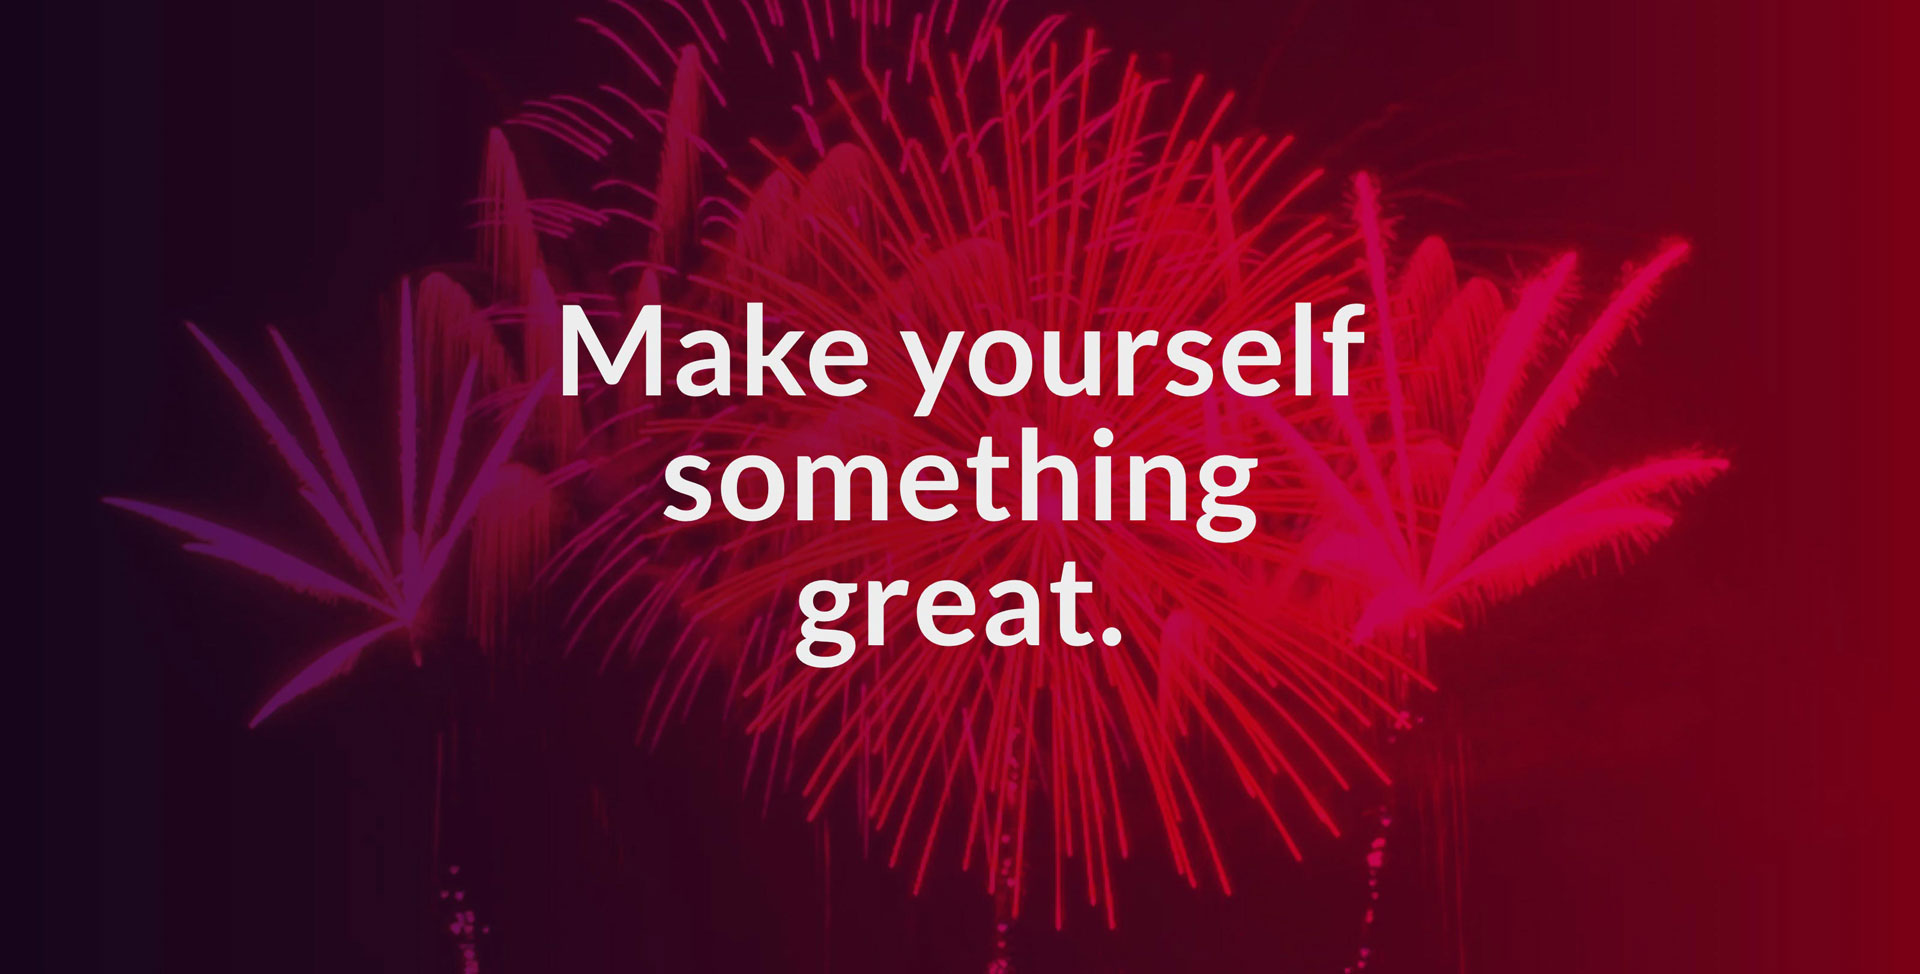 Make yourself something great